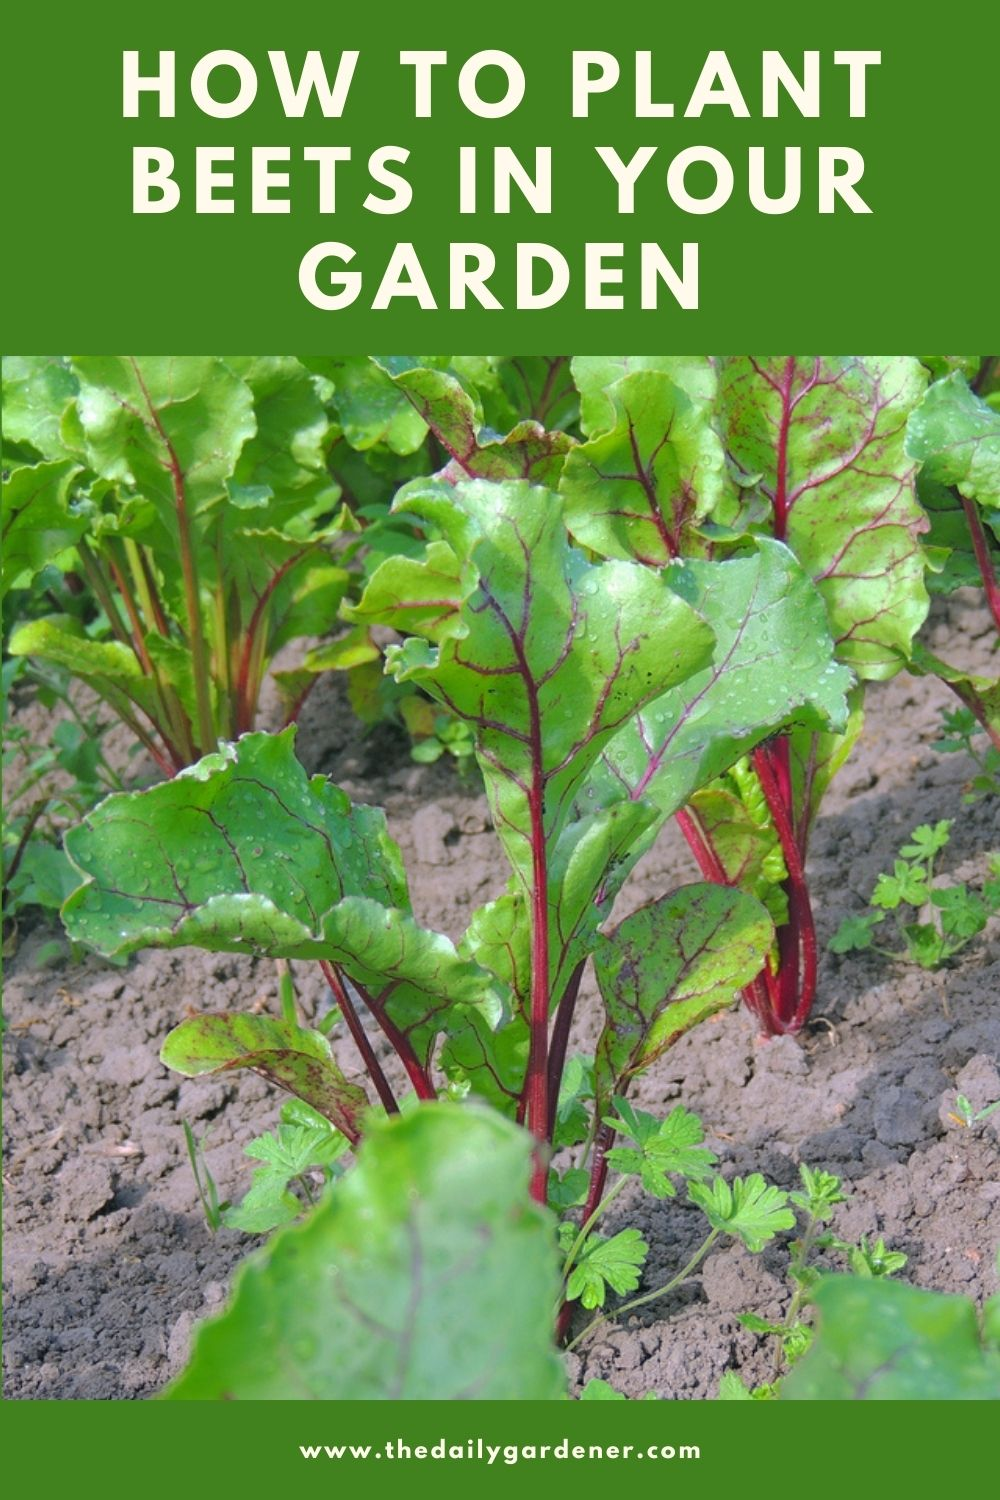 How to Plant Beets in Your Garden (Tricks to Care!) 1